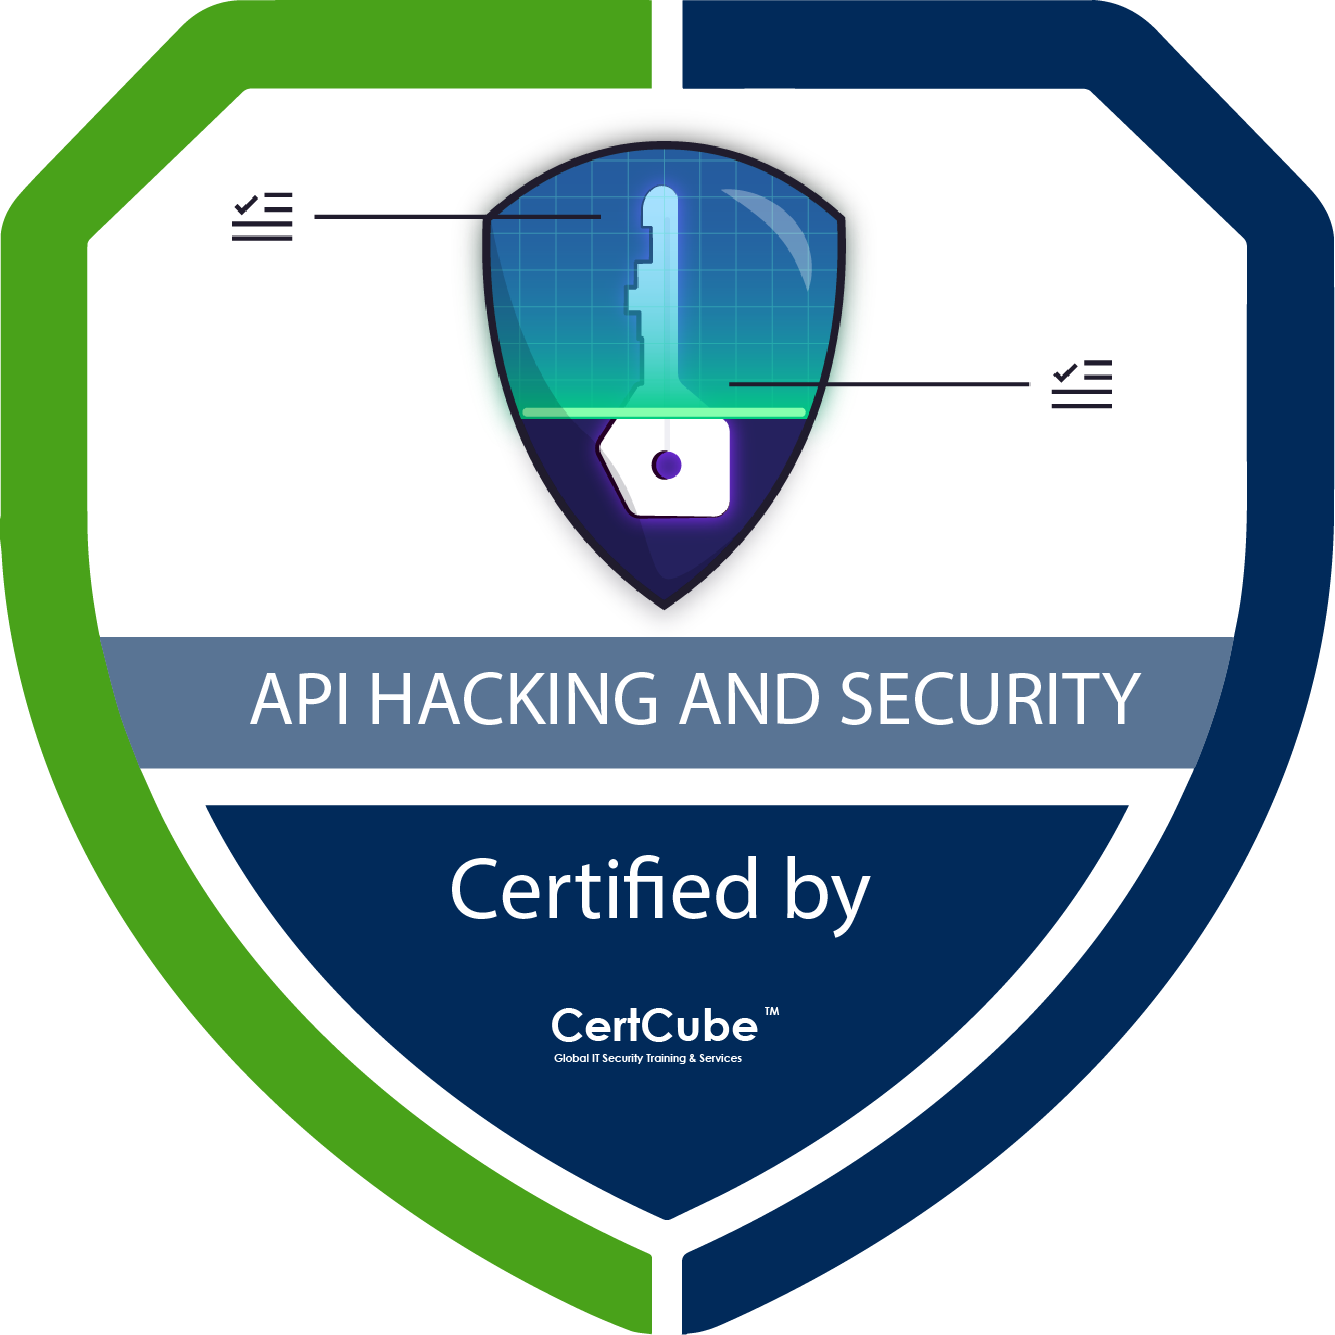 API hacking and Security